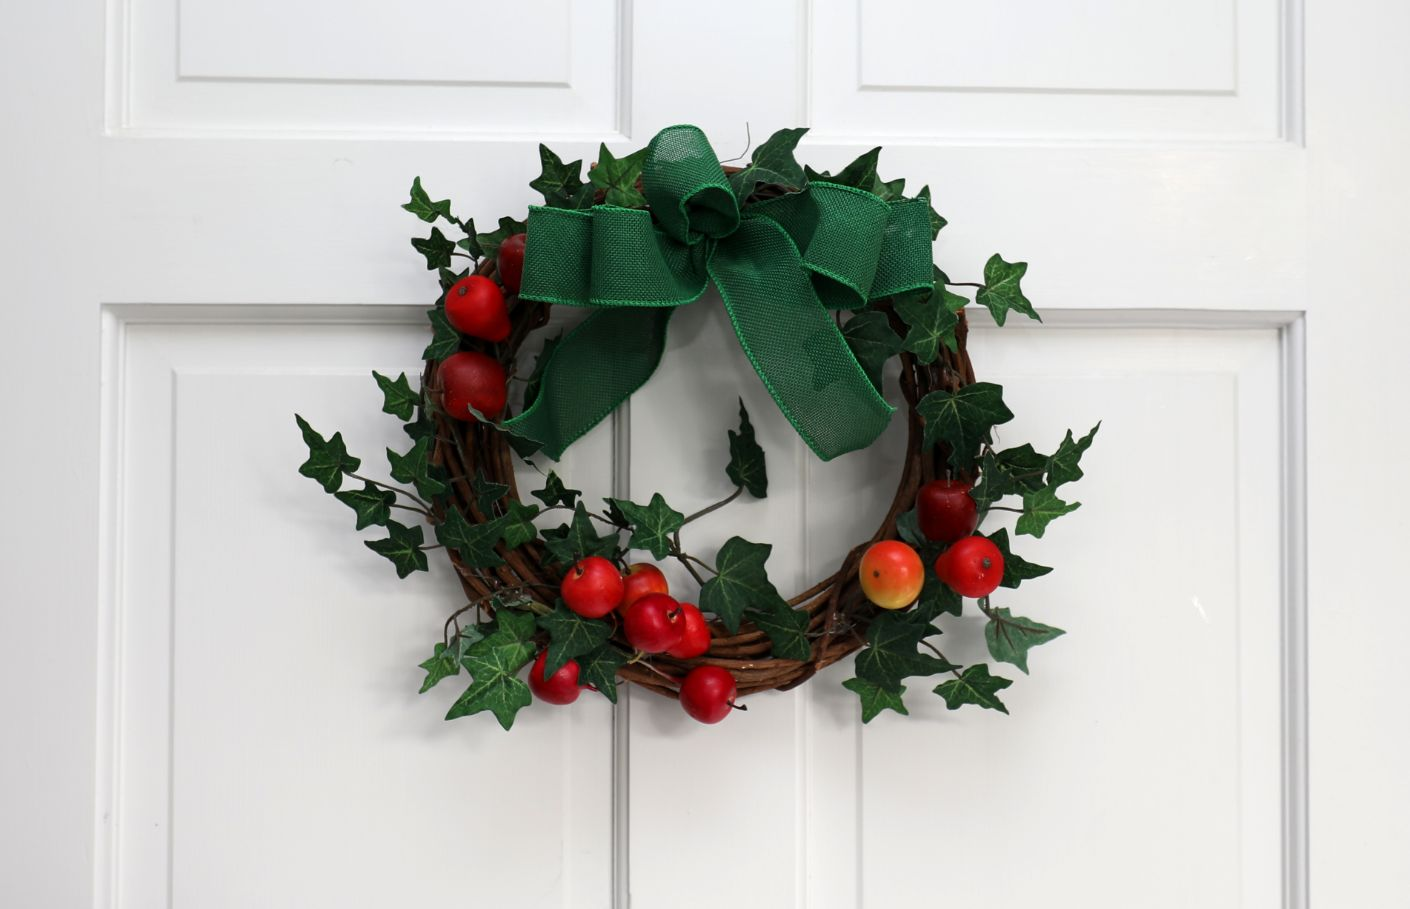 Grapevine Fruit Wreath with Ivy | 13 inch